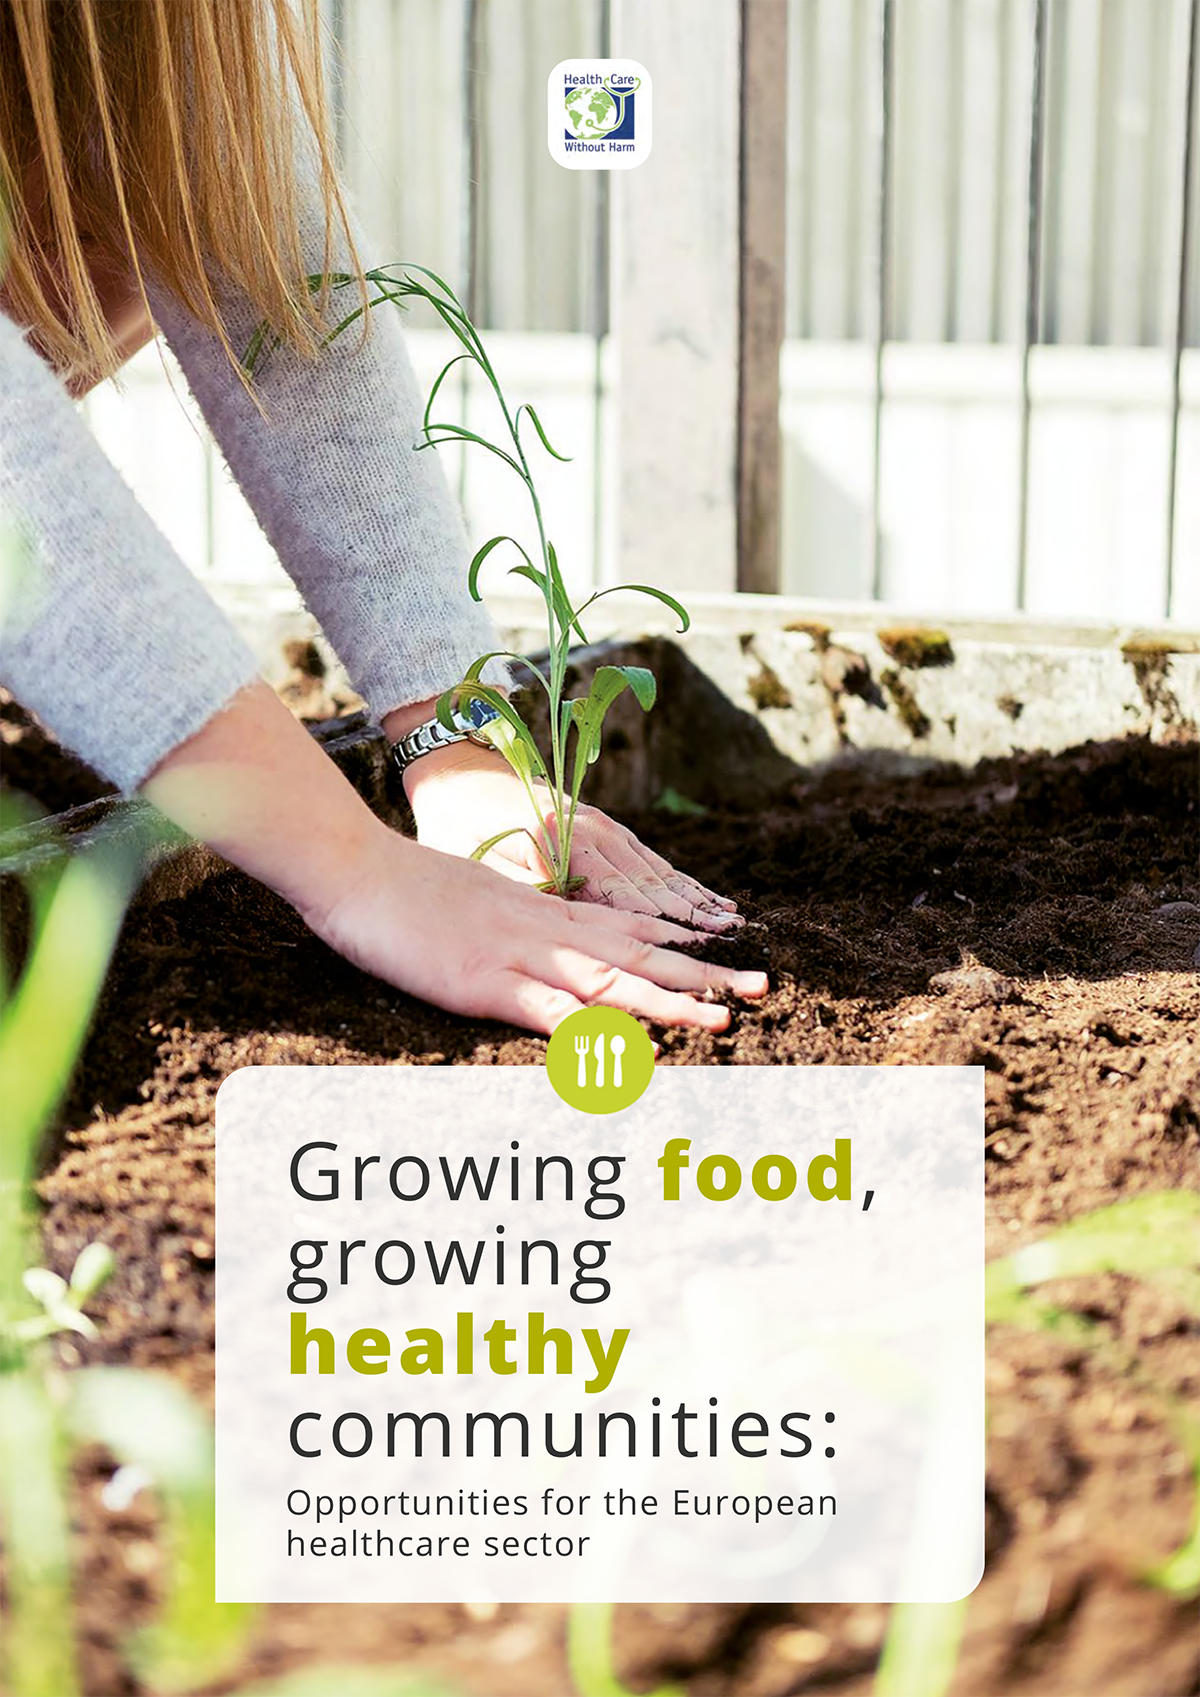 Growing food, growing healthy communities: Opportunities for the European healthcare sector